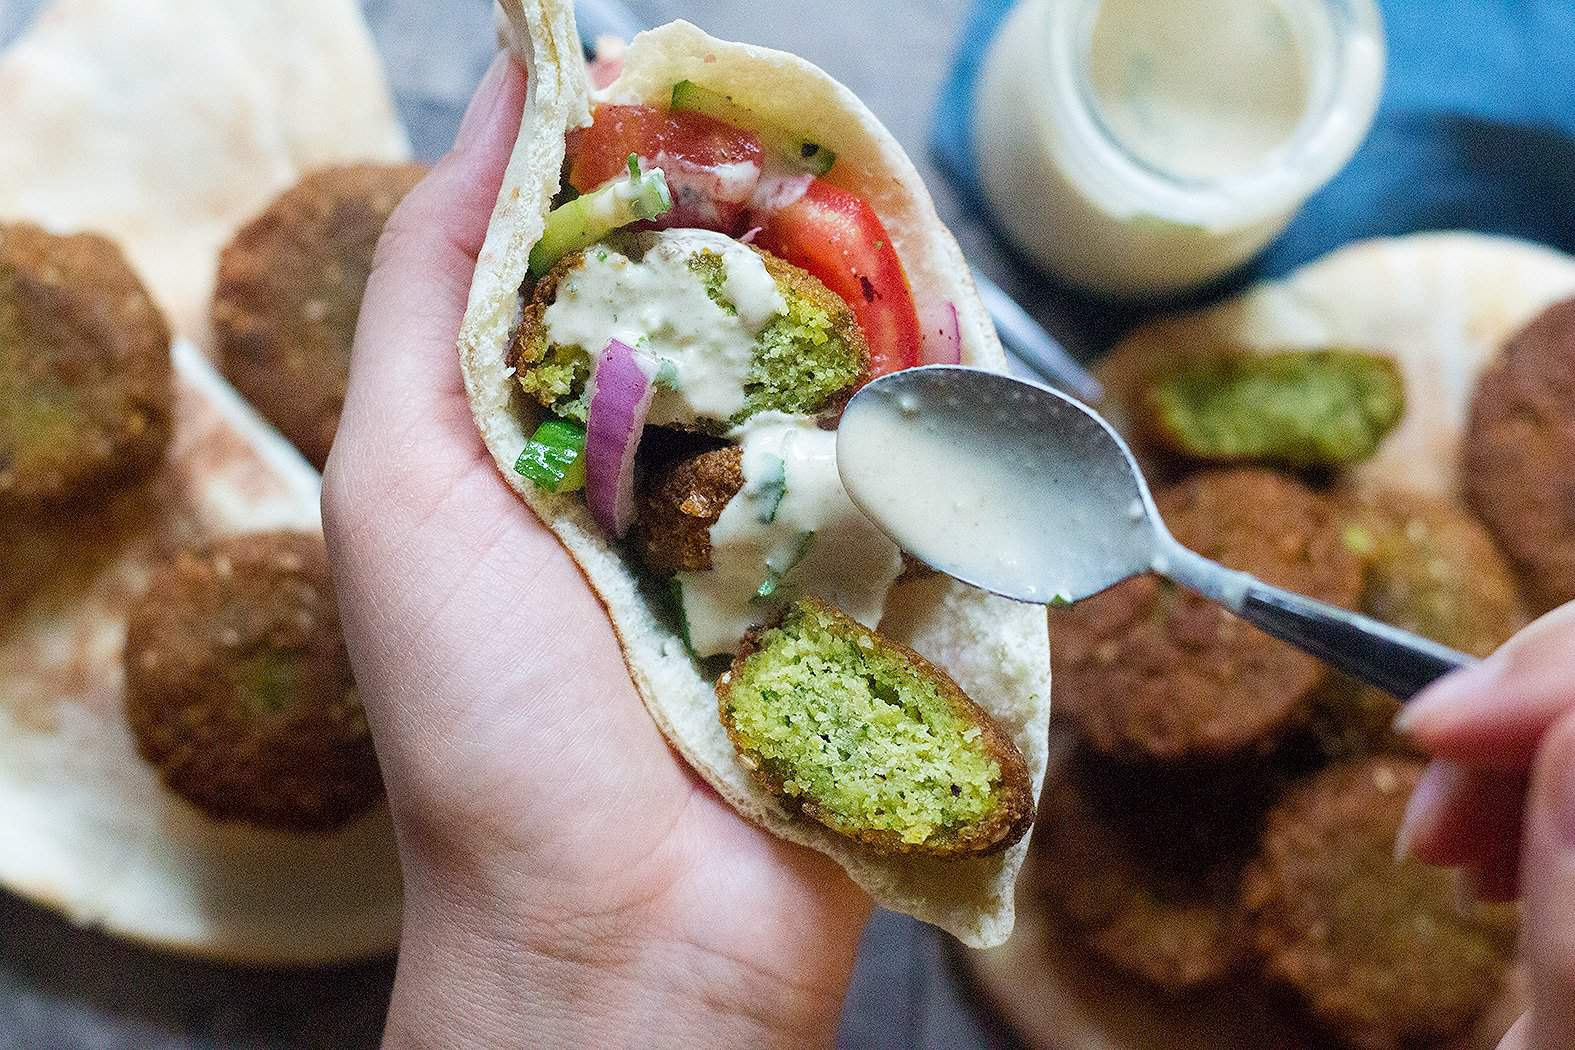 Learn how to make falafel and enjoy it at home with pita and greens.